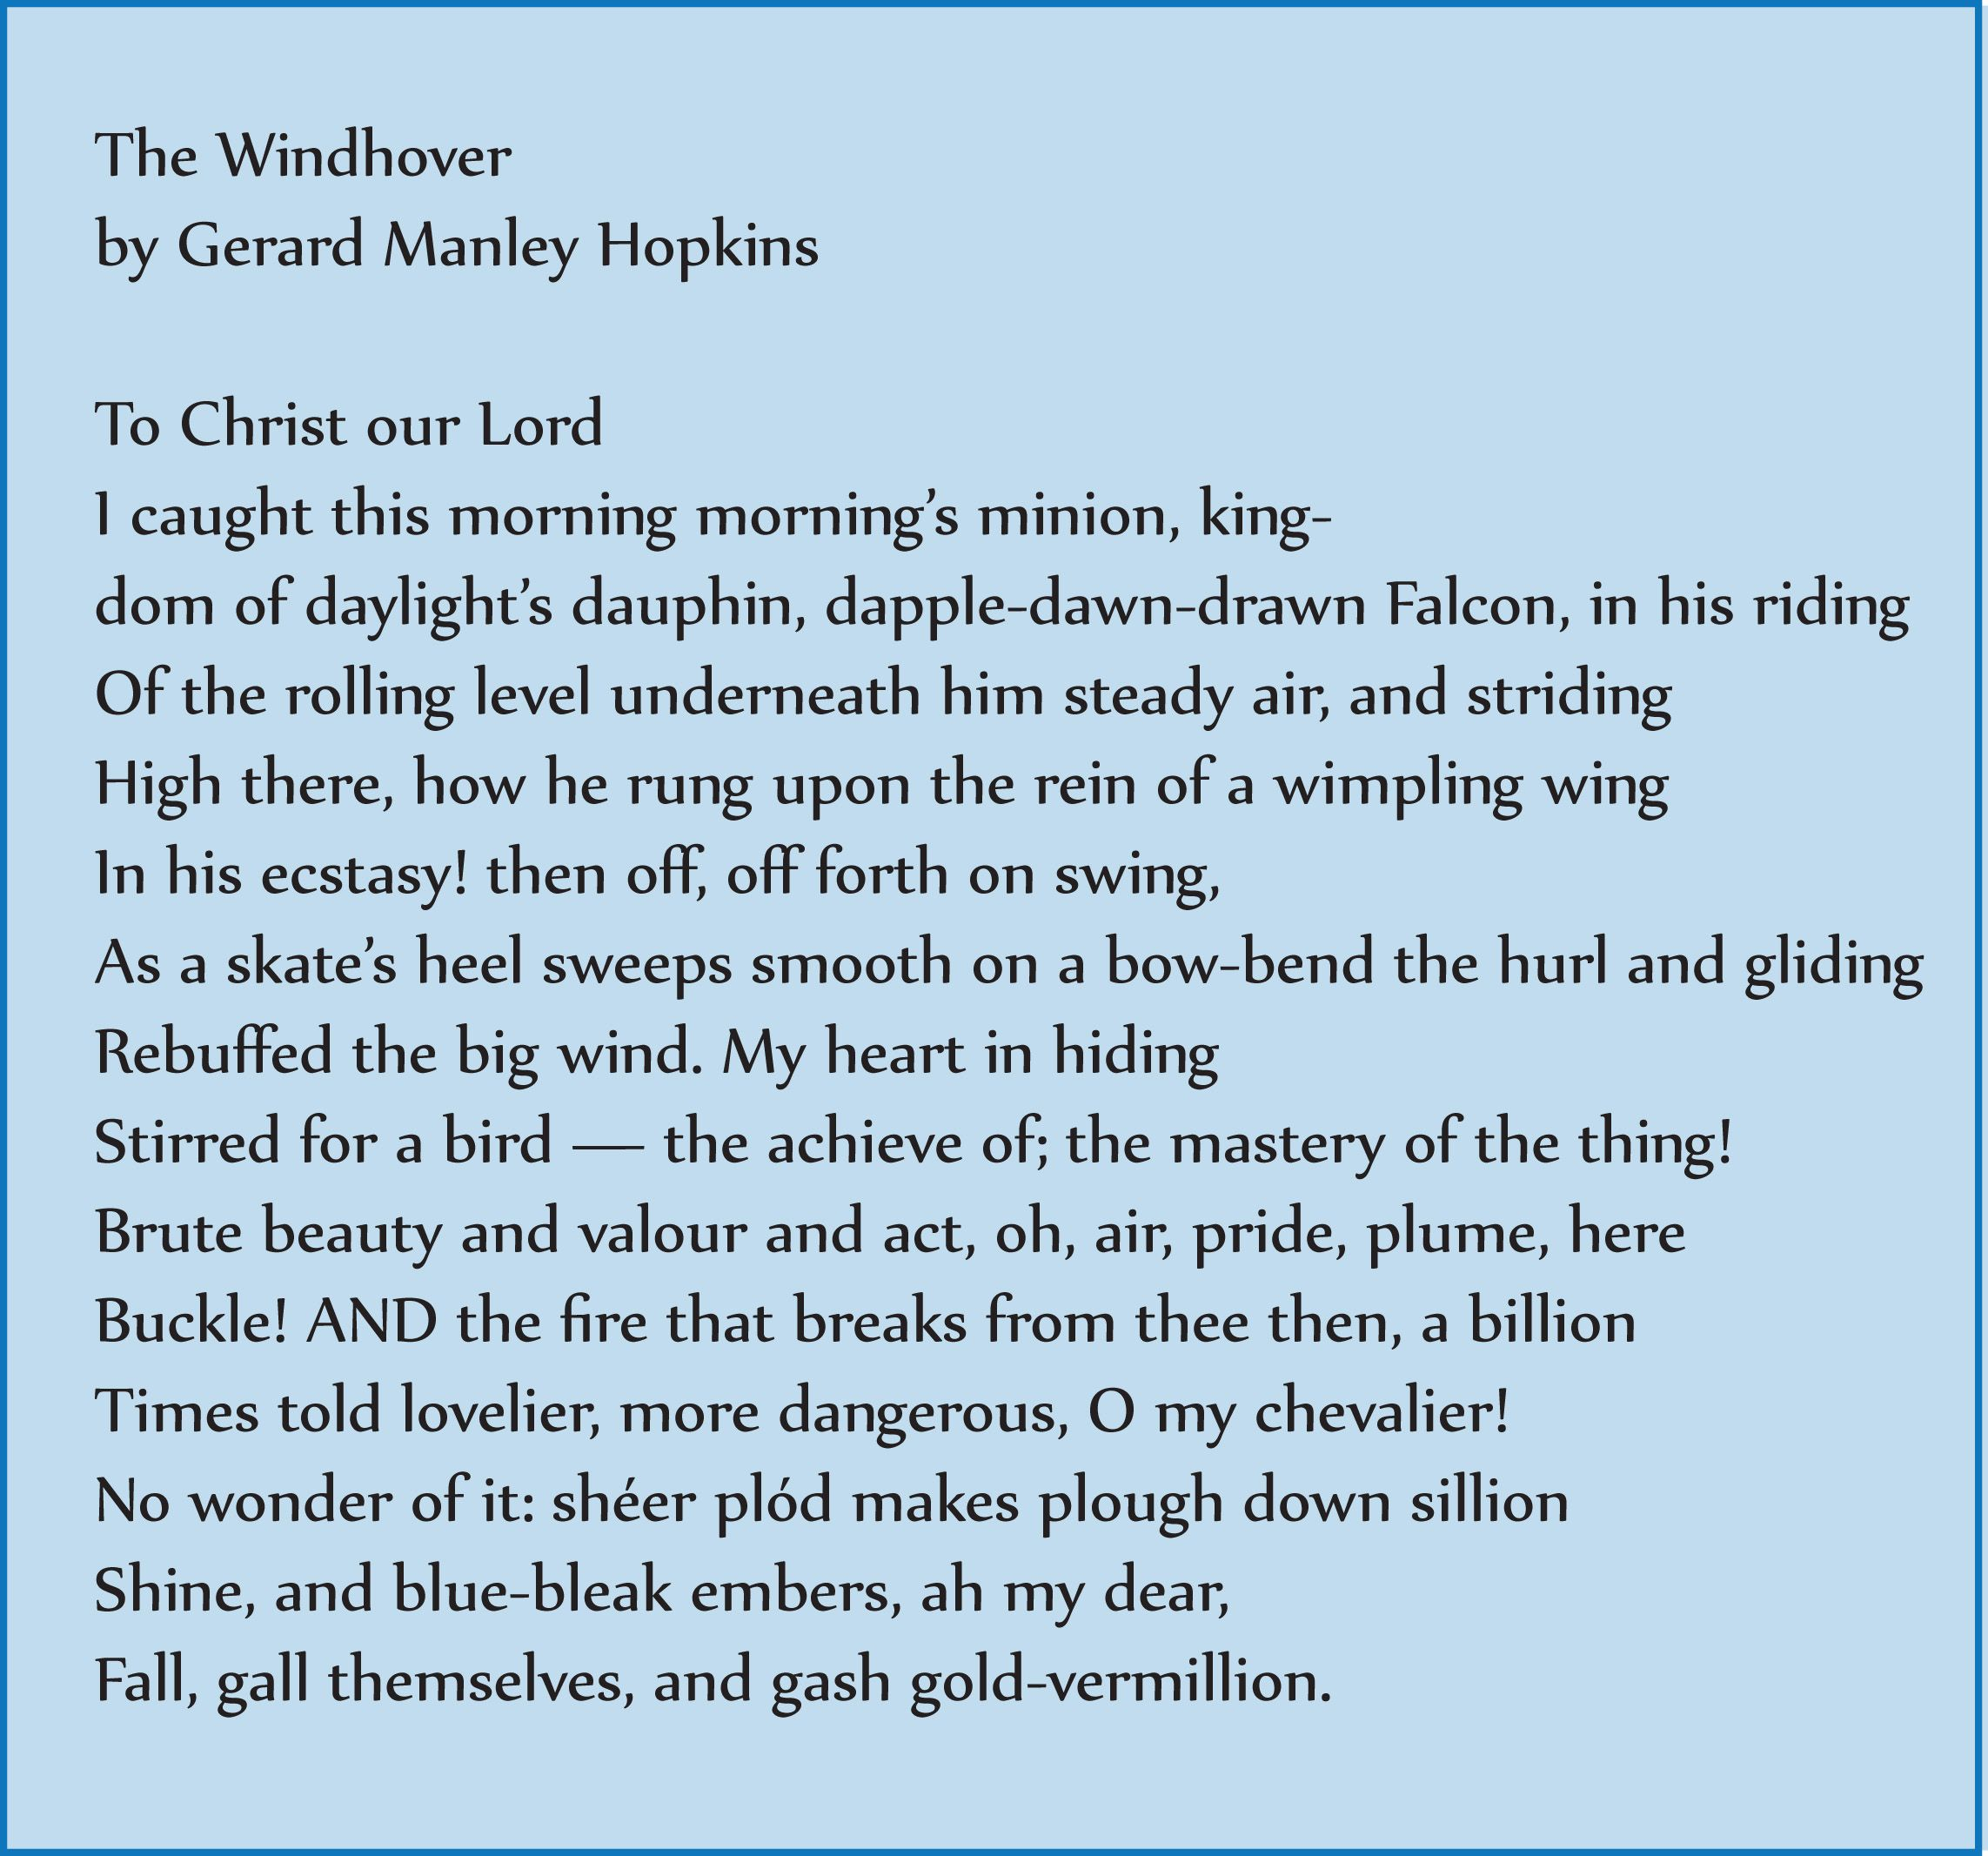 The Windhover - Gerard Manley Hopkins